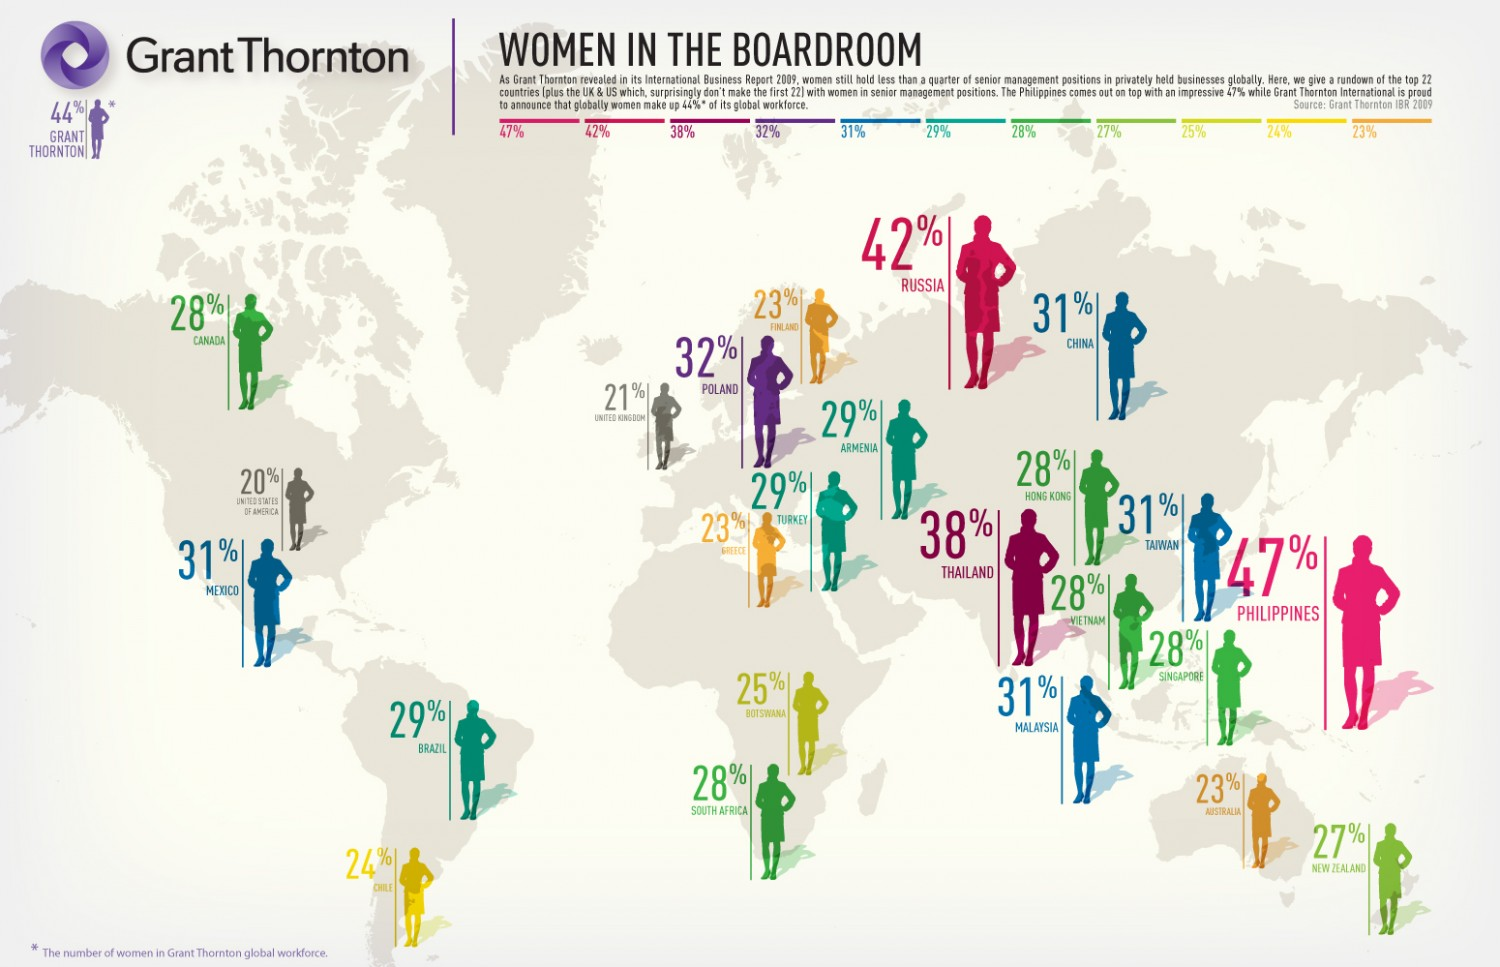 Women In The Boardroom By Country